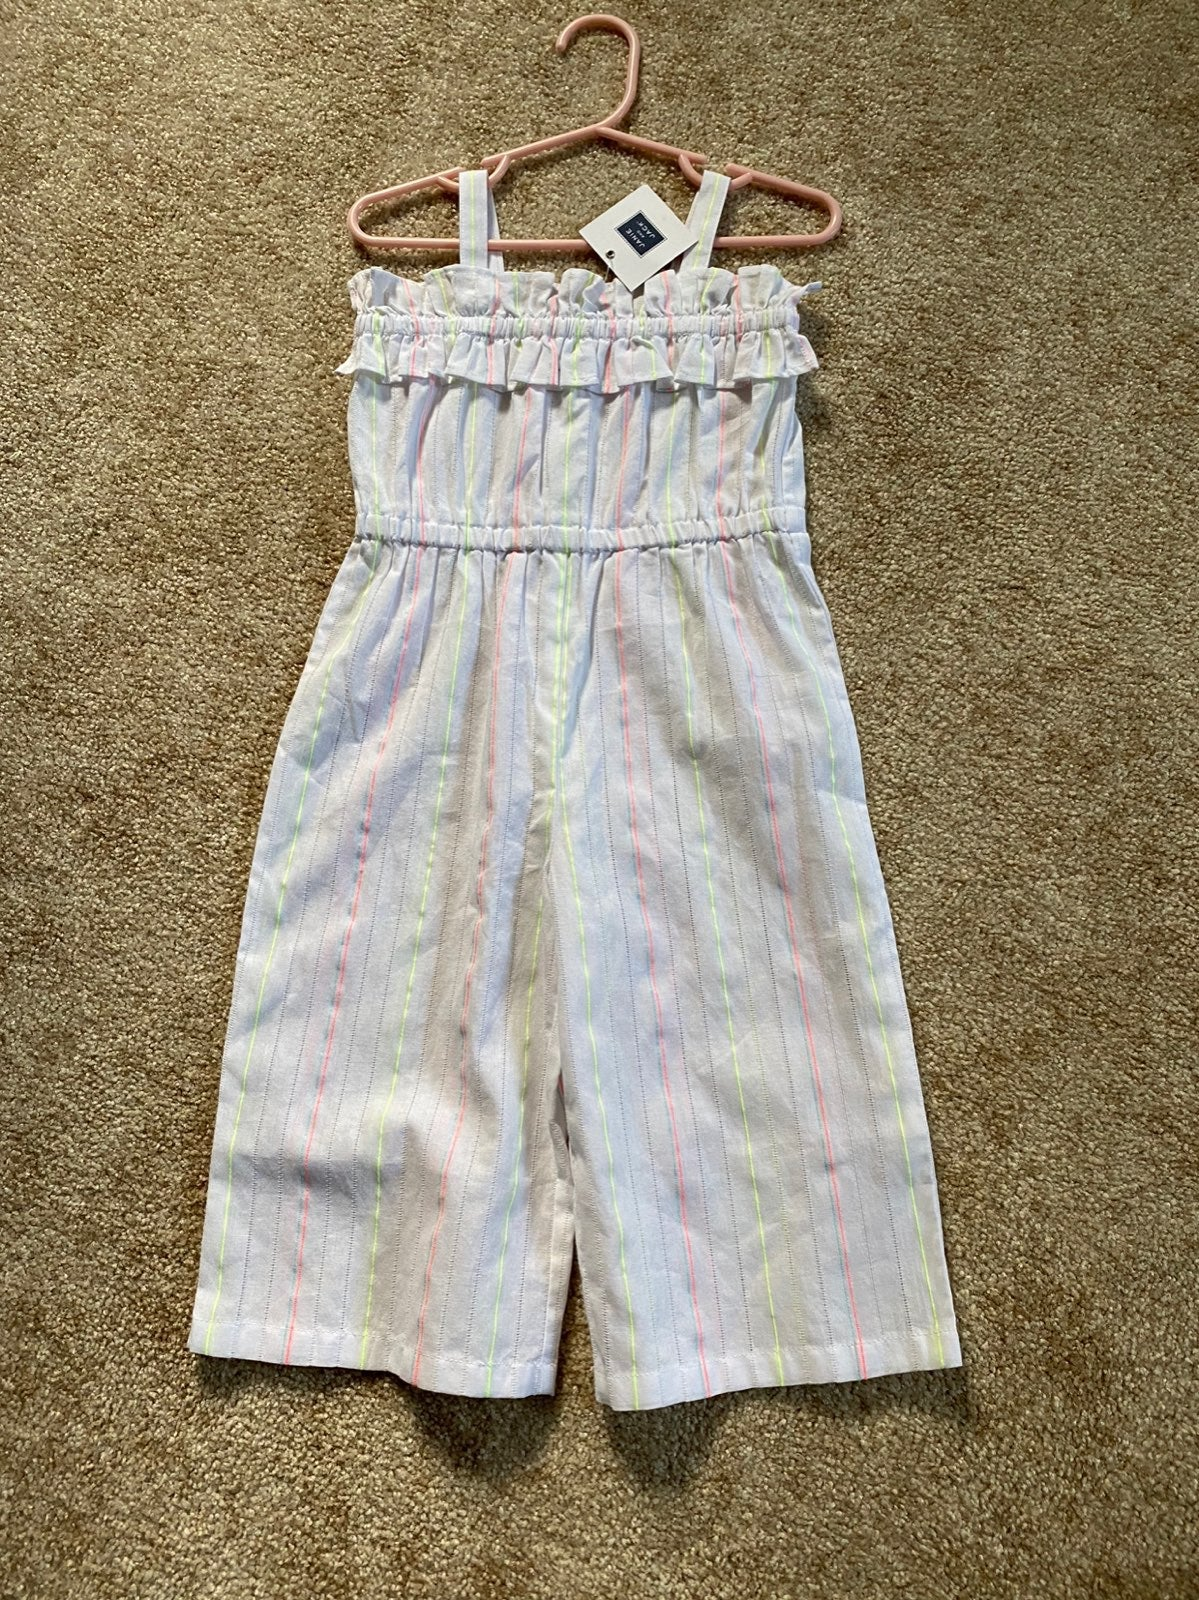 White Janie and Jack Jumpsuit